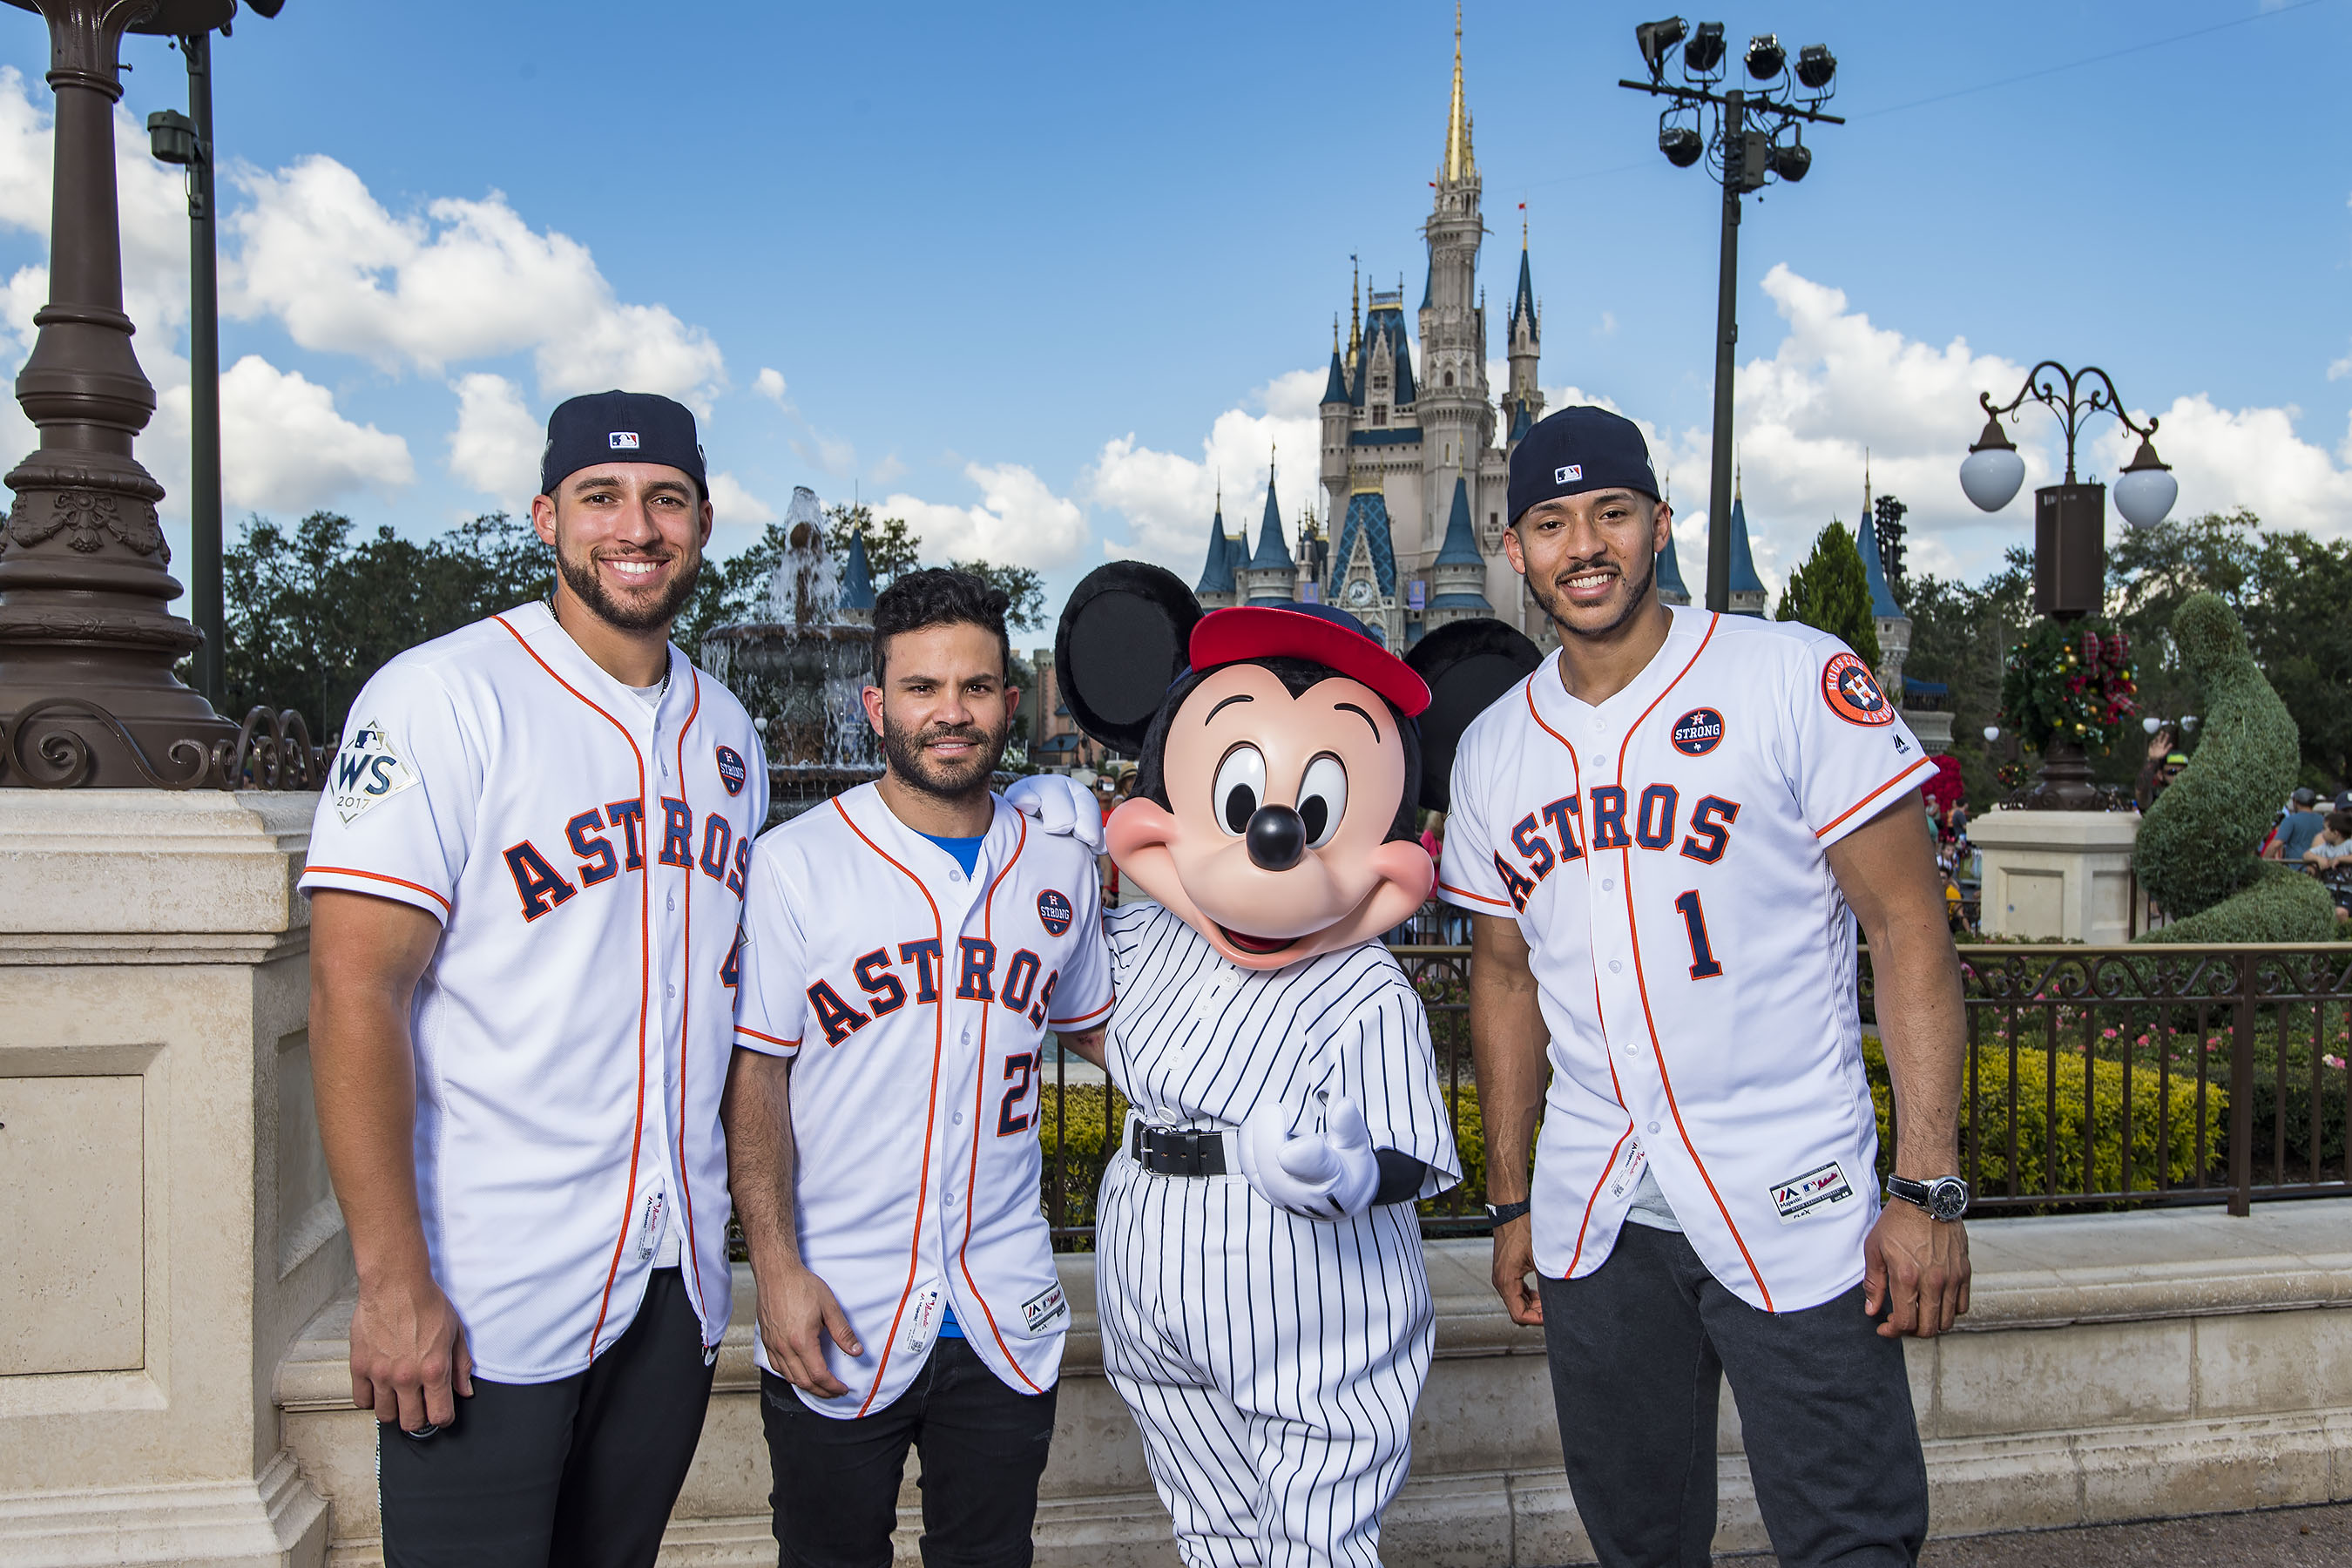 <div class='meta'><div class='origin-logo' data-origin='KTRK'></div><span class='caption-text' data-credit='Matt Stroshane'>Houston Astros star players (l-r) World Series MVP George Springer, American League batting champion Jose Altuve and All-Star Carlos Correa team up with Mickey Mouse.</span></div>